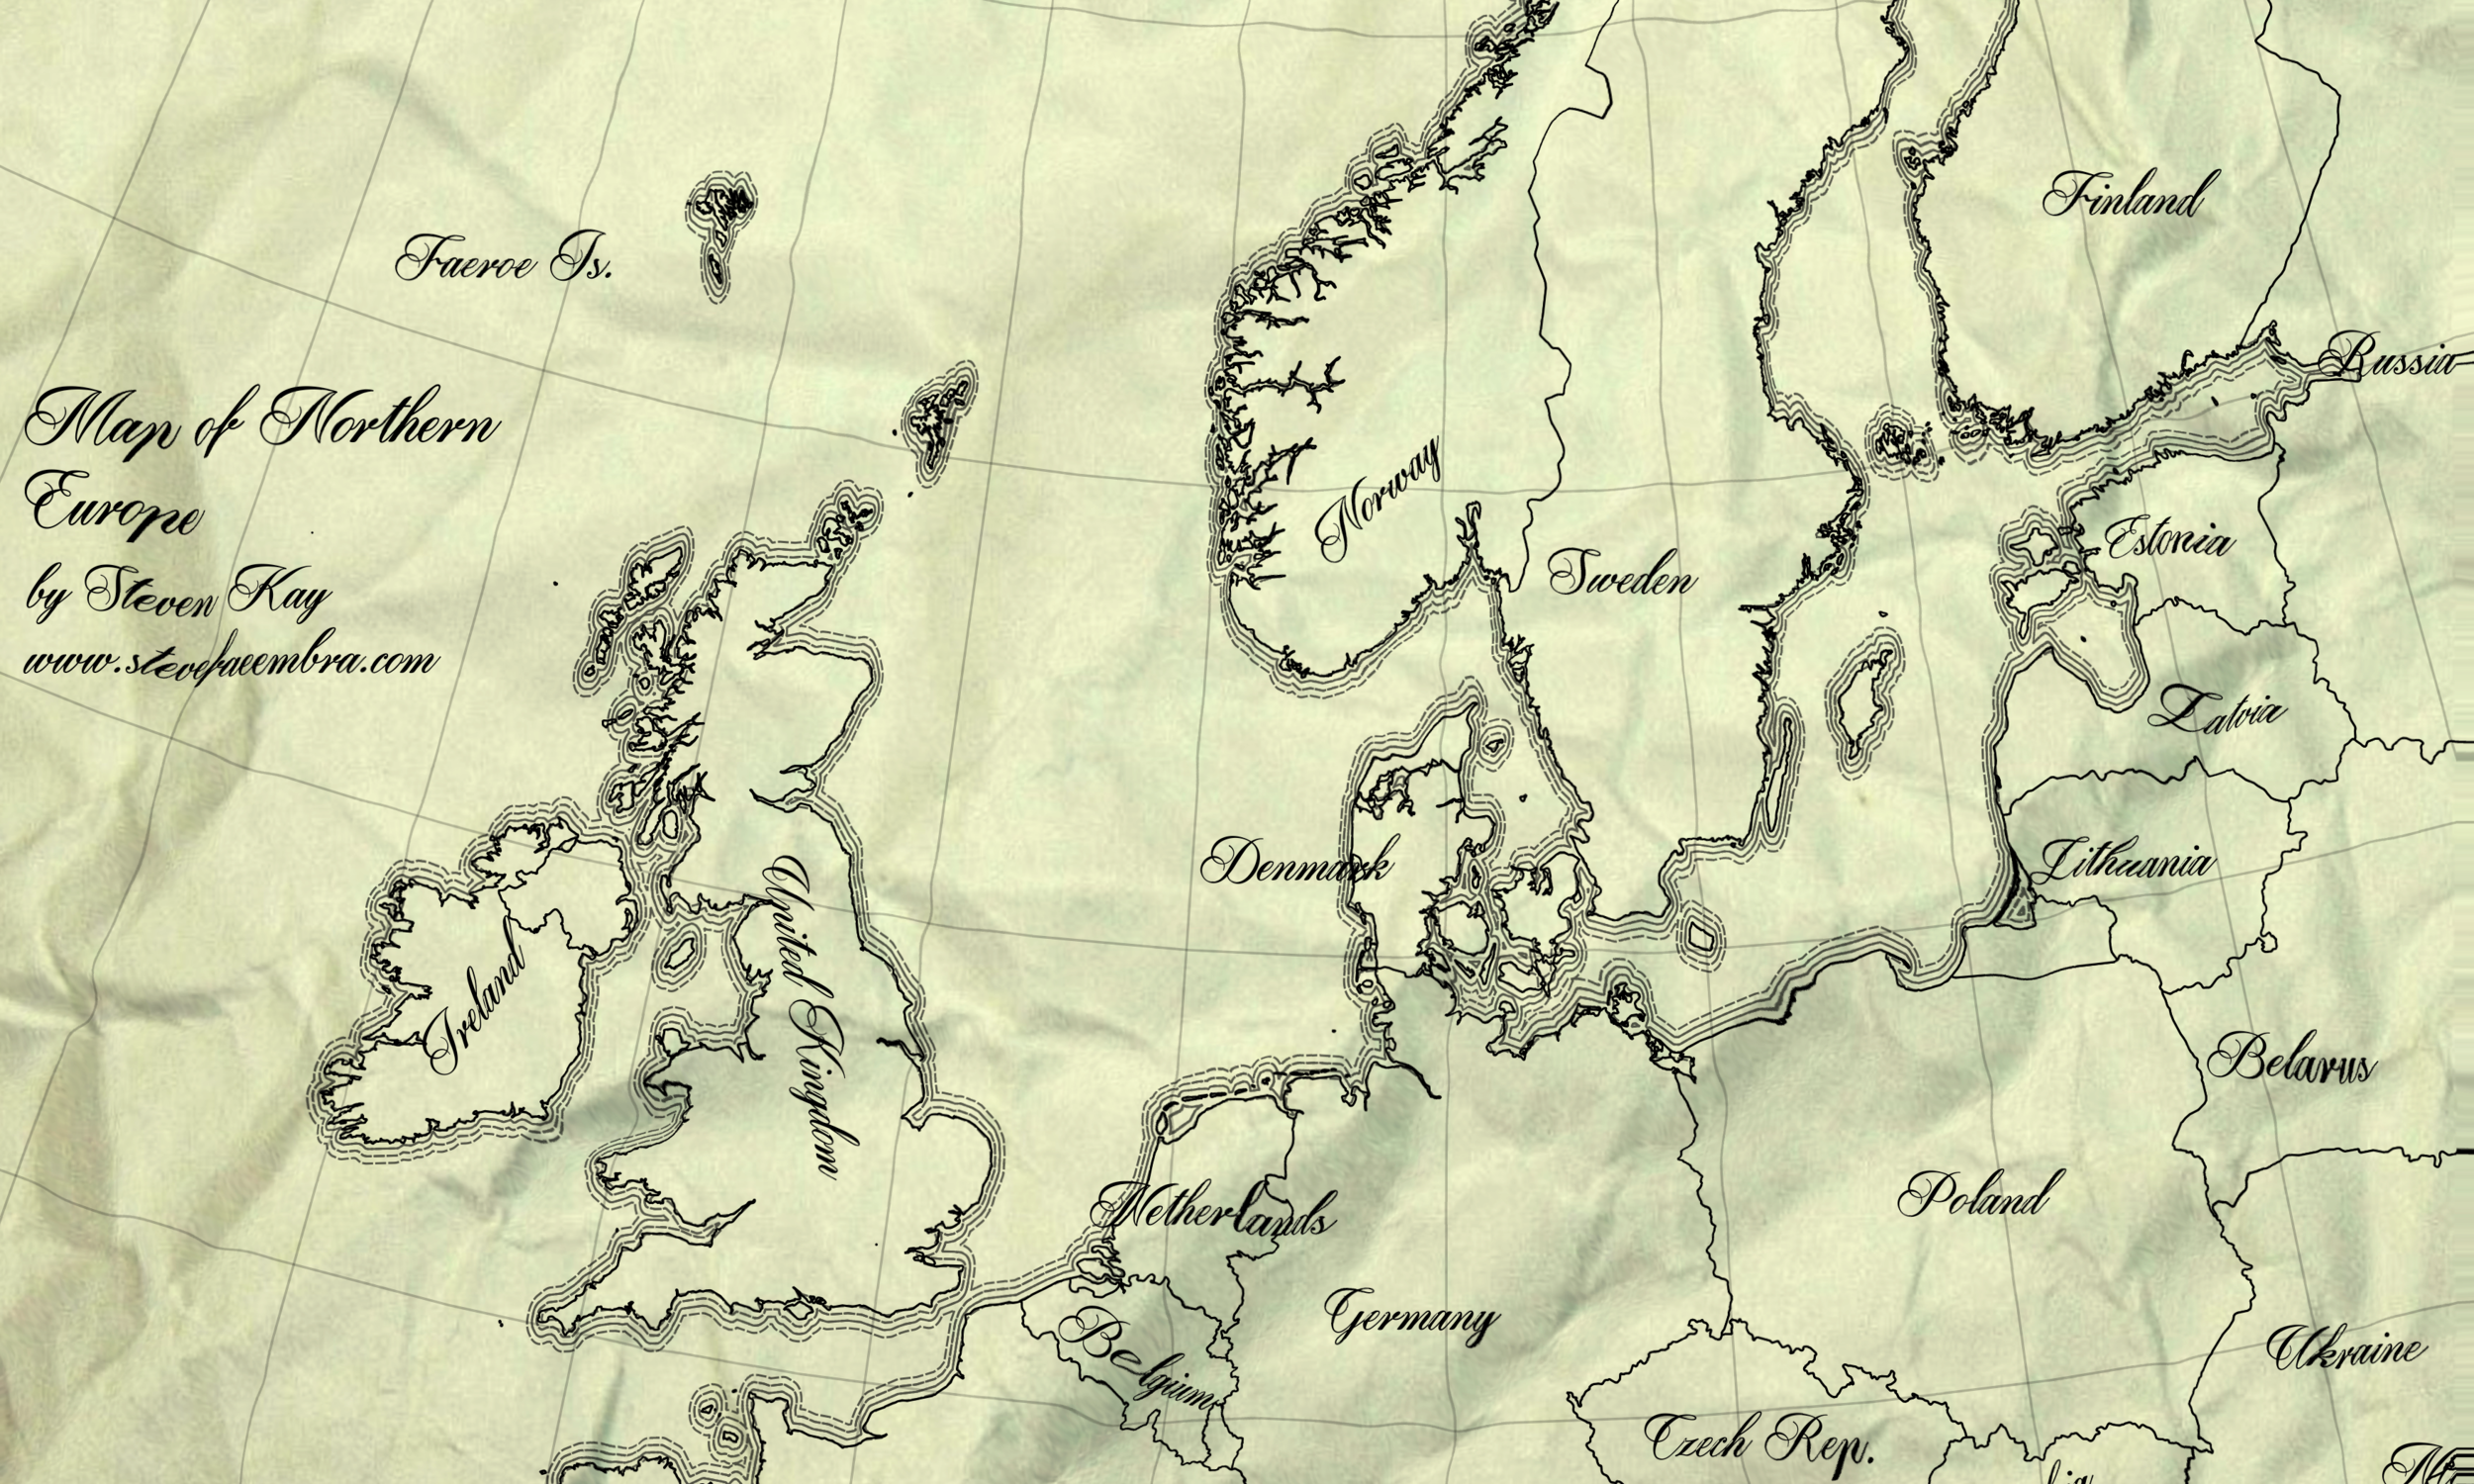 Antique style crumpled paper map